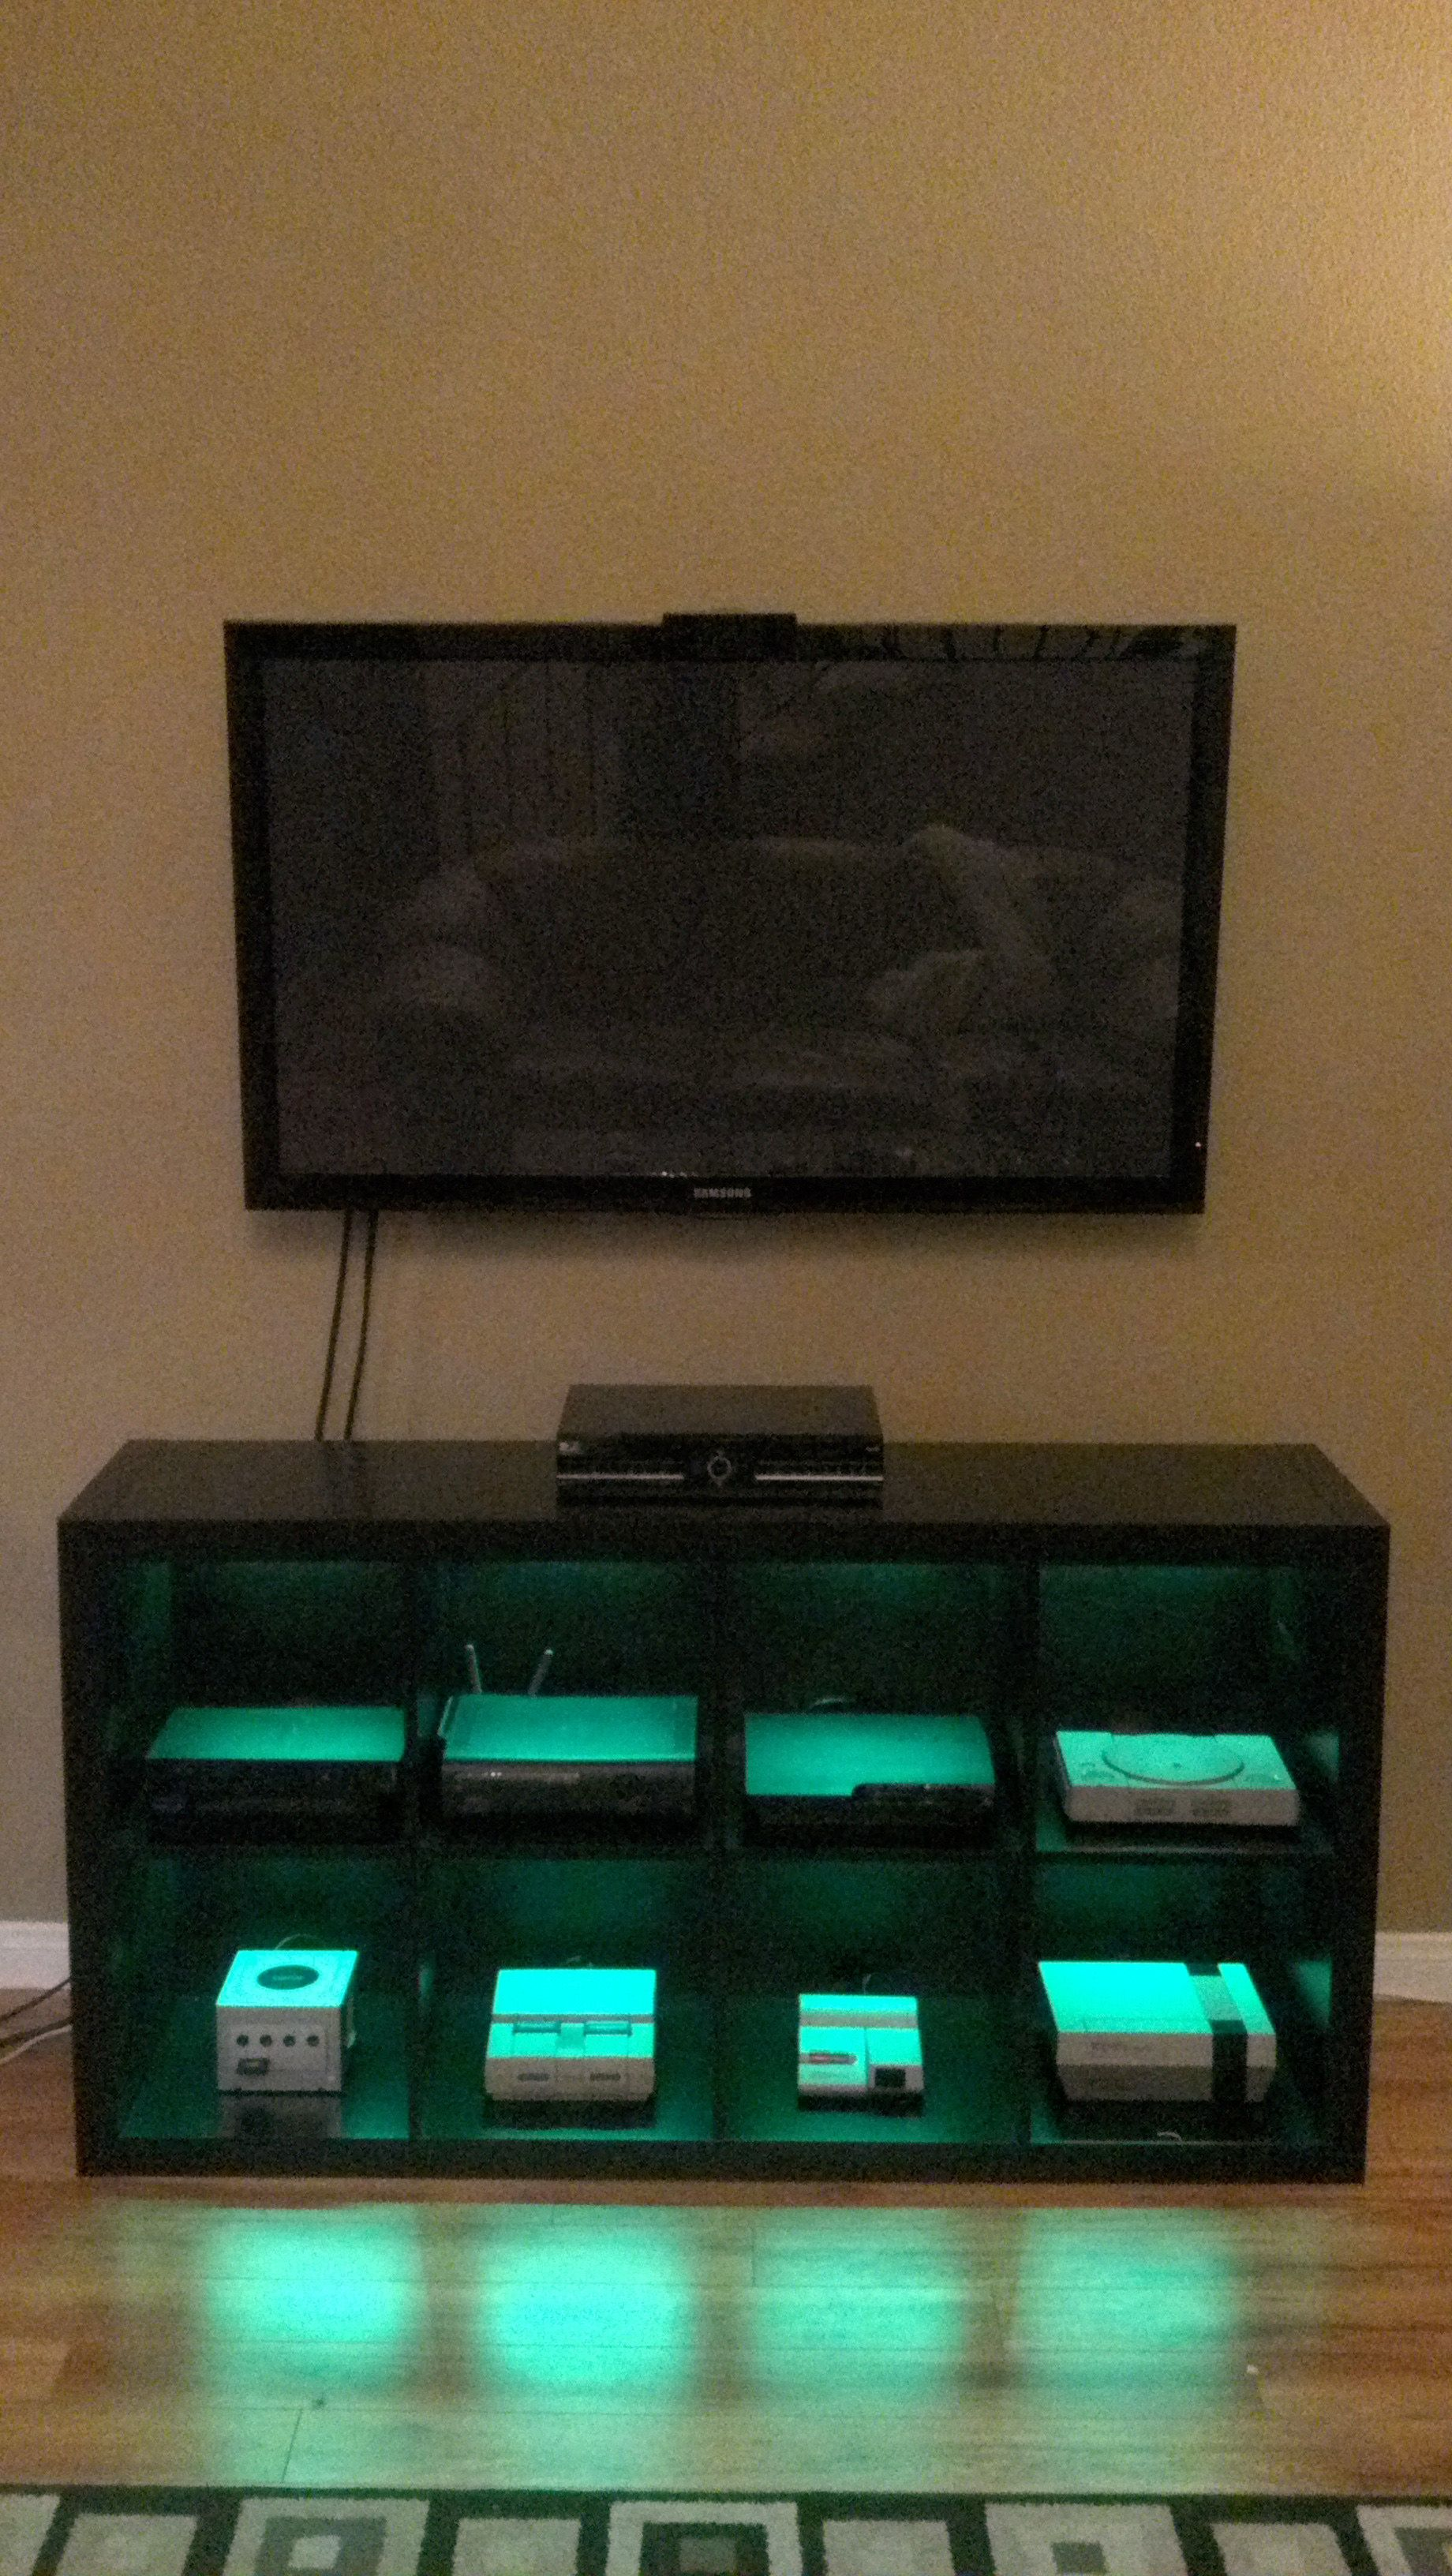 Meuble Jeux Video Video Game Console Cabinet With Led Lights Via Reddit User